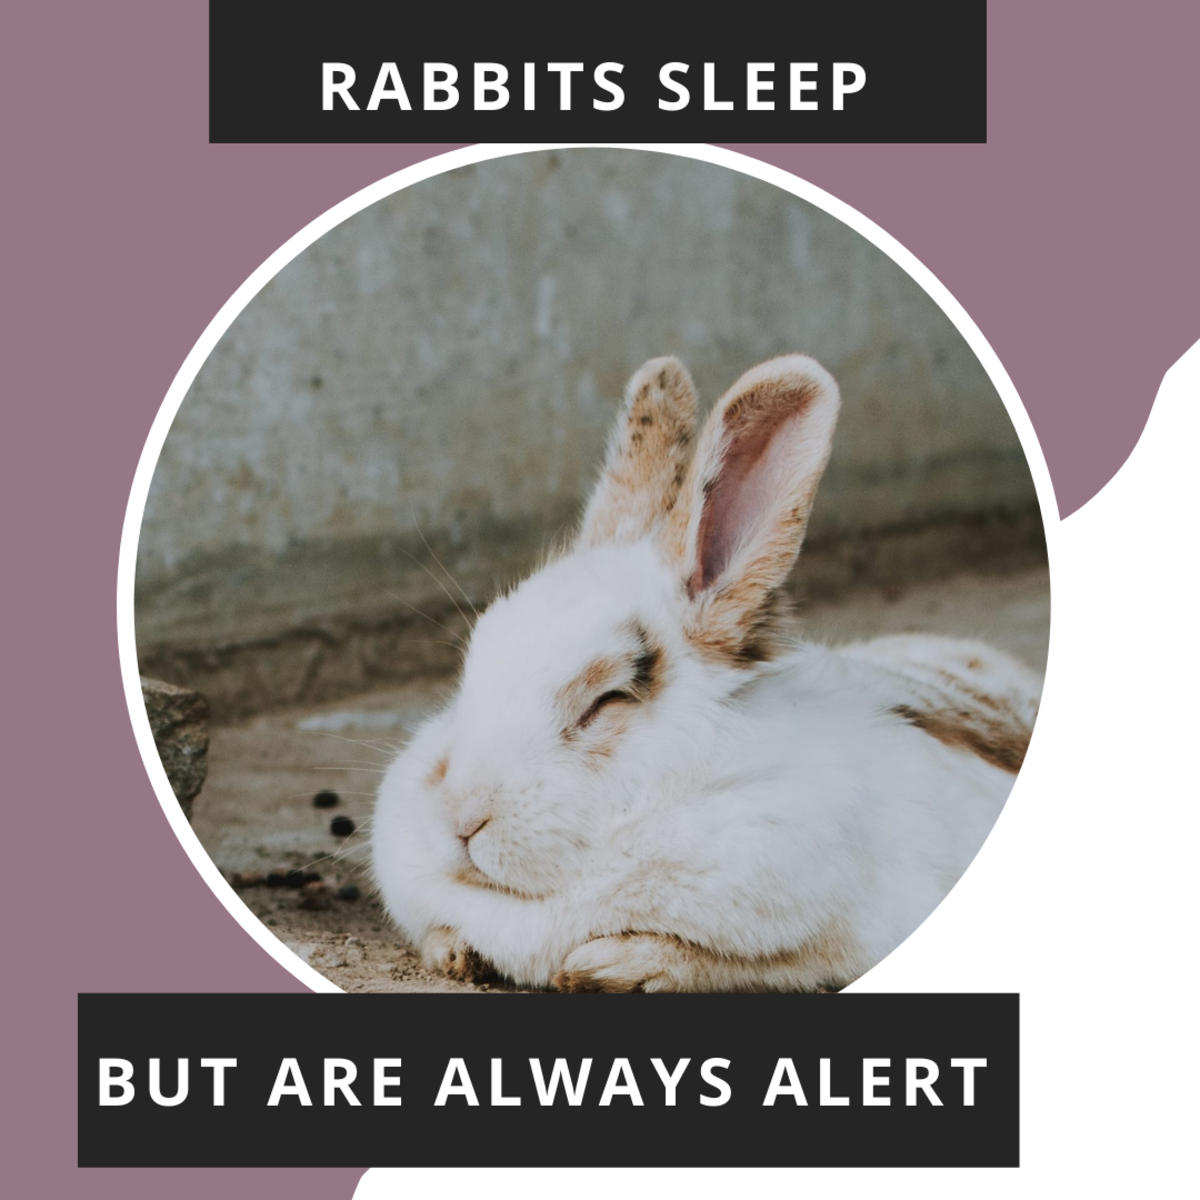 Rabbits fall asleep but also can wake up in an instant.